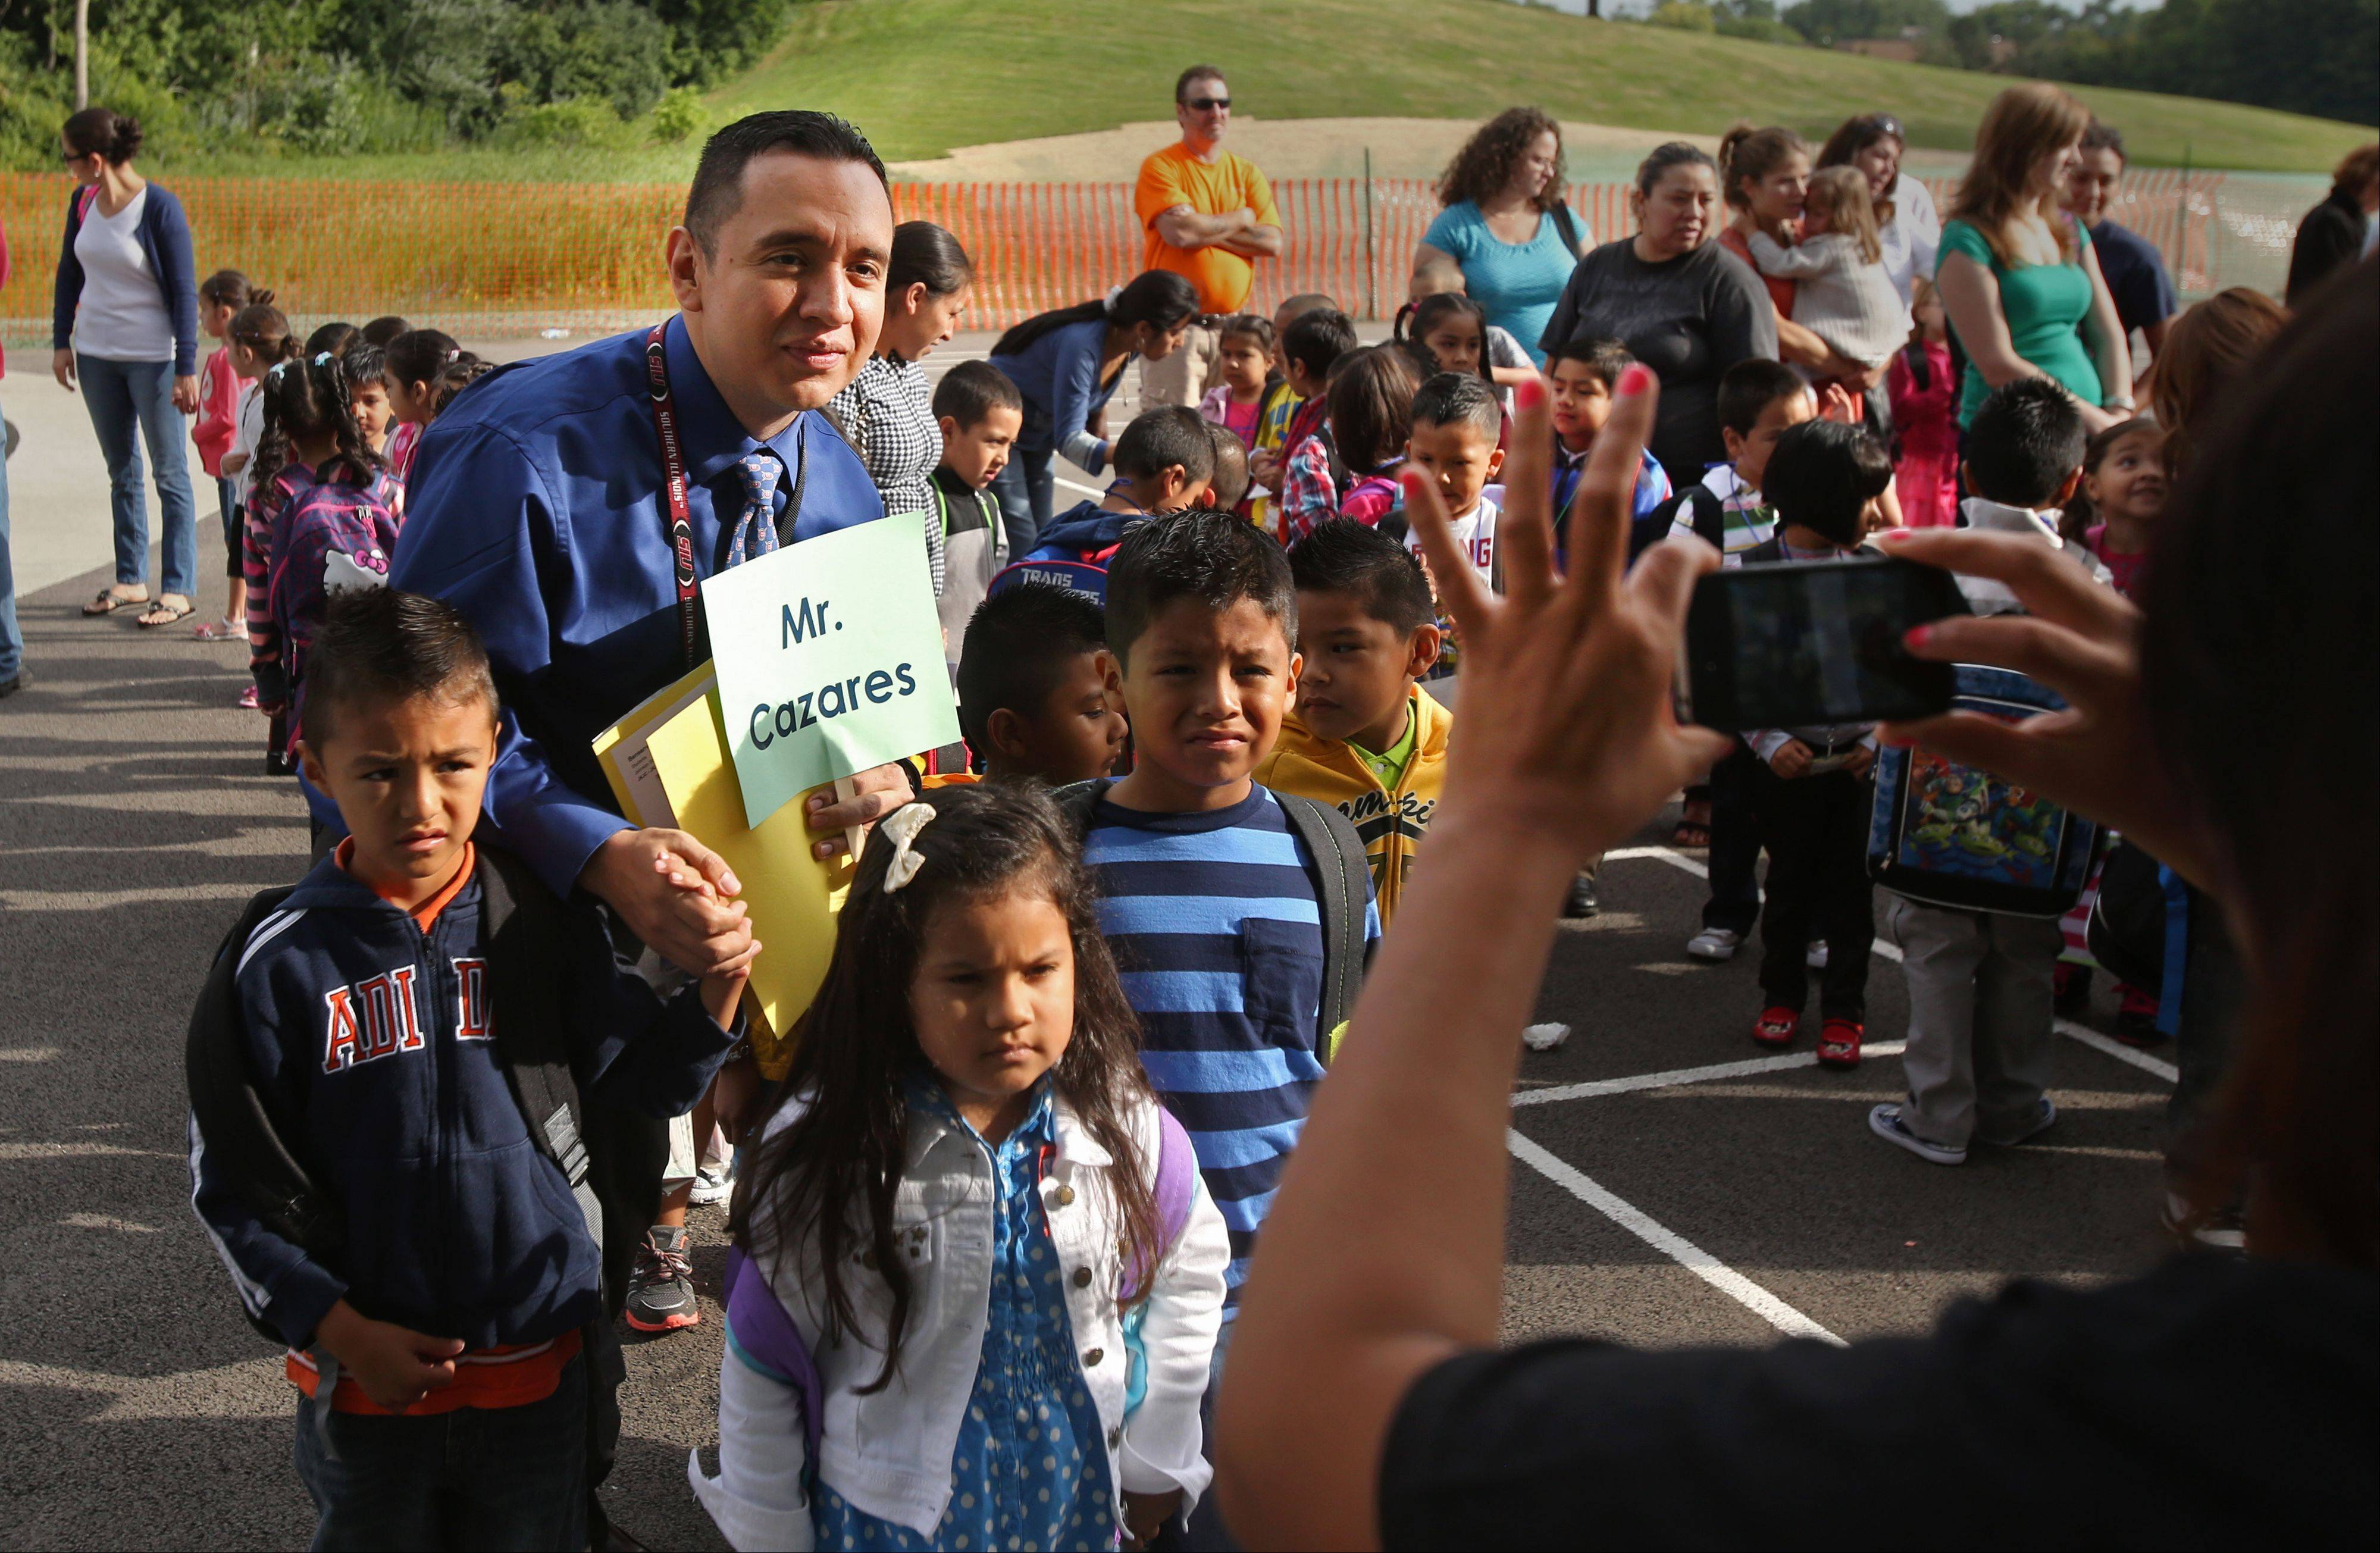 Kindergarten teacher Jaime Cazares has his photo taken with students during the first day of classes at Johnson.